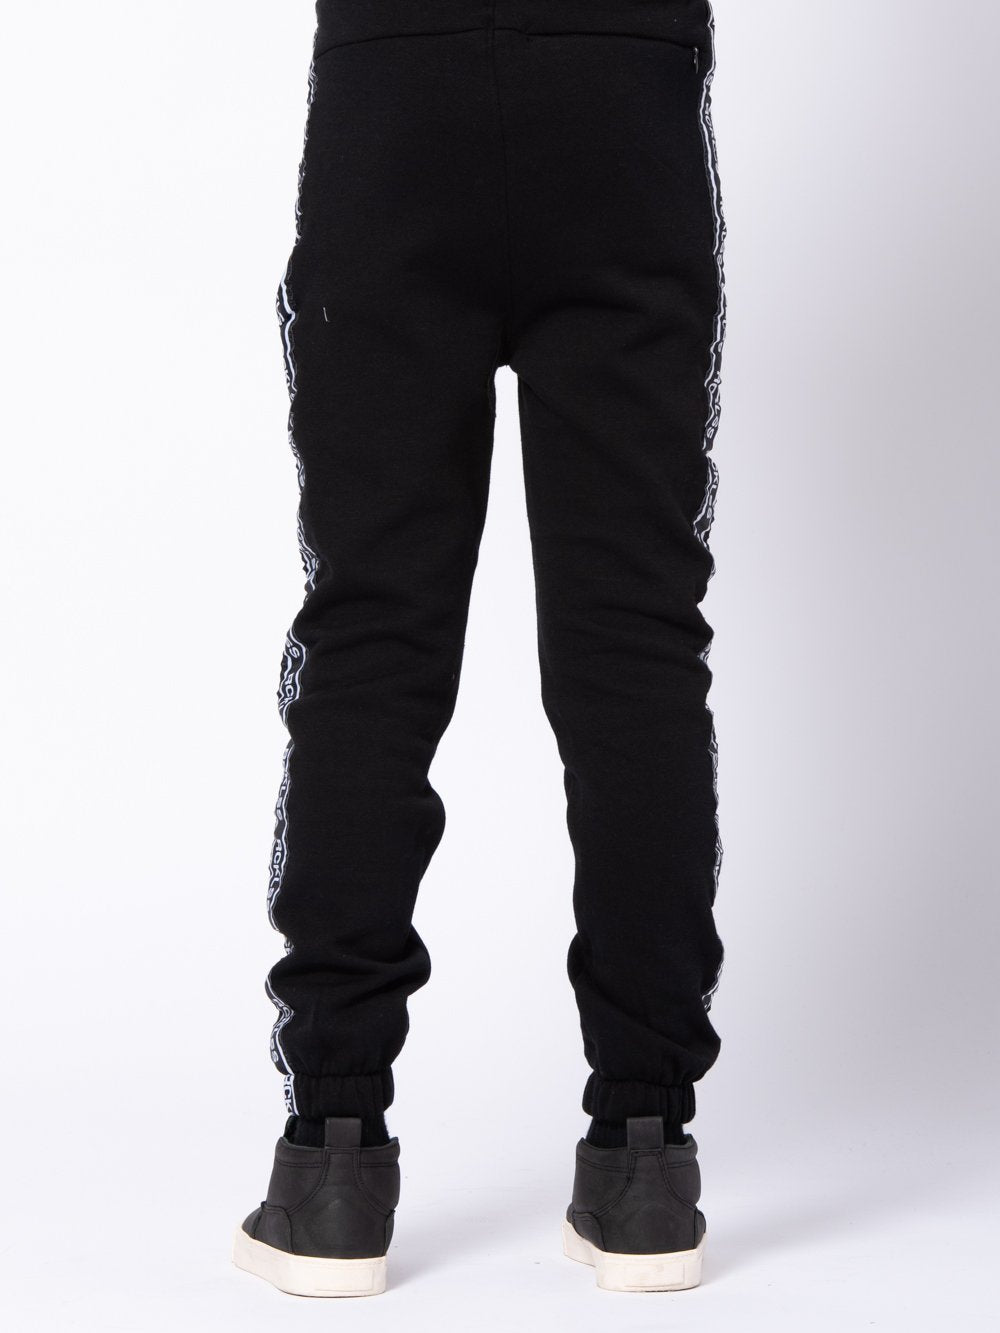 Young and Reckless Boys Youth - Bottoms - Sweatpants Youth Streamline Sweatpants - Black